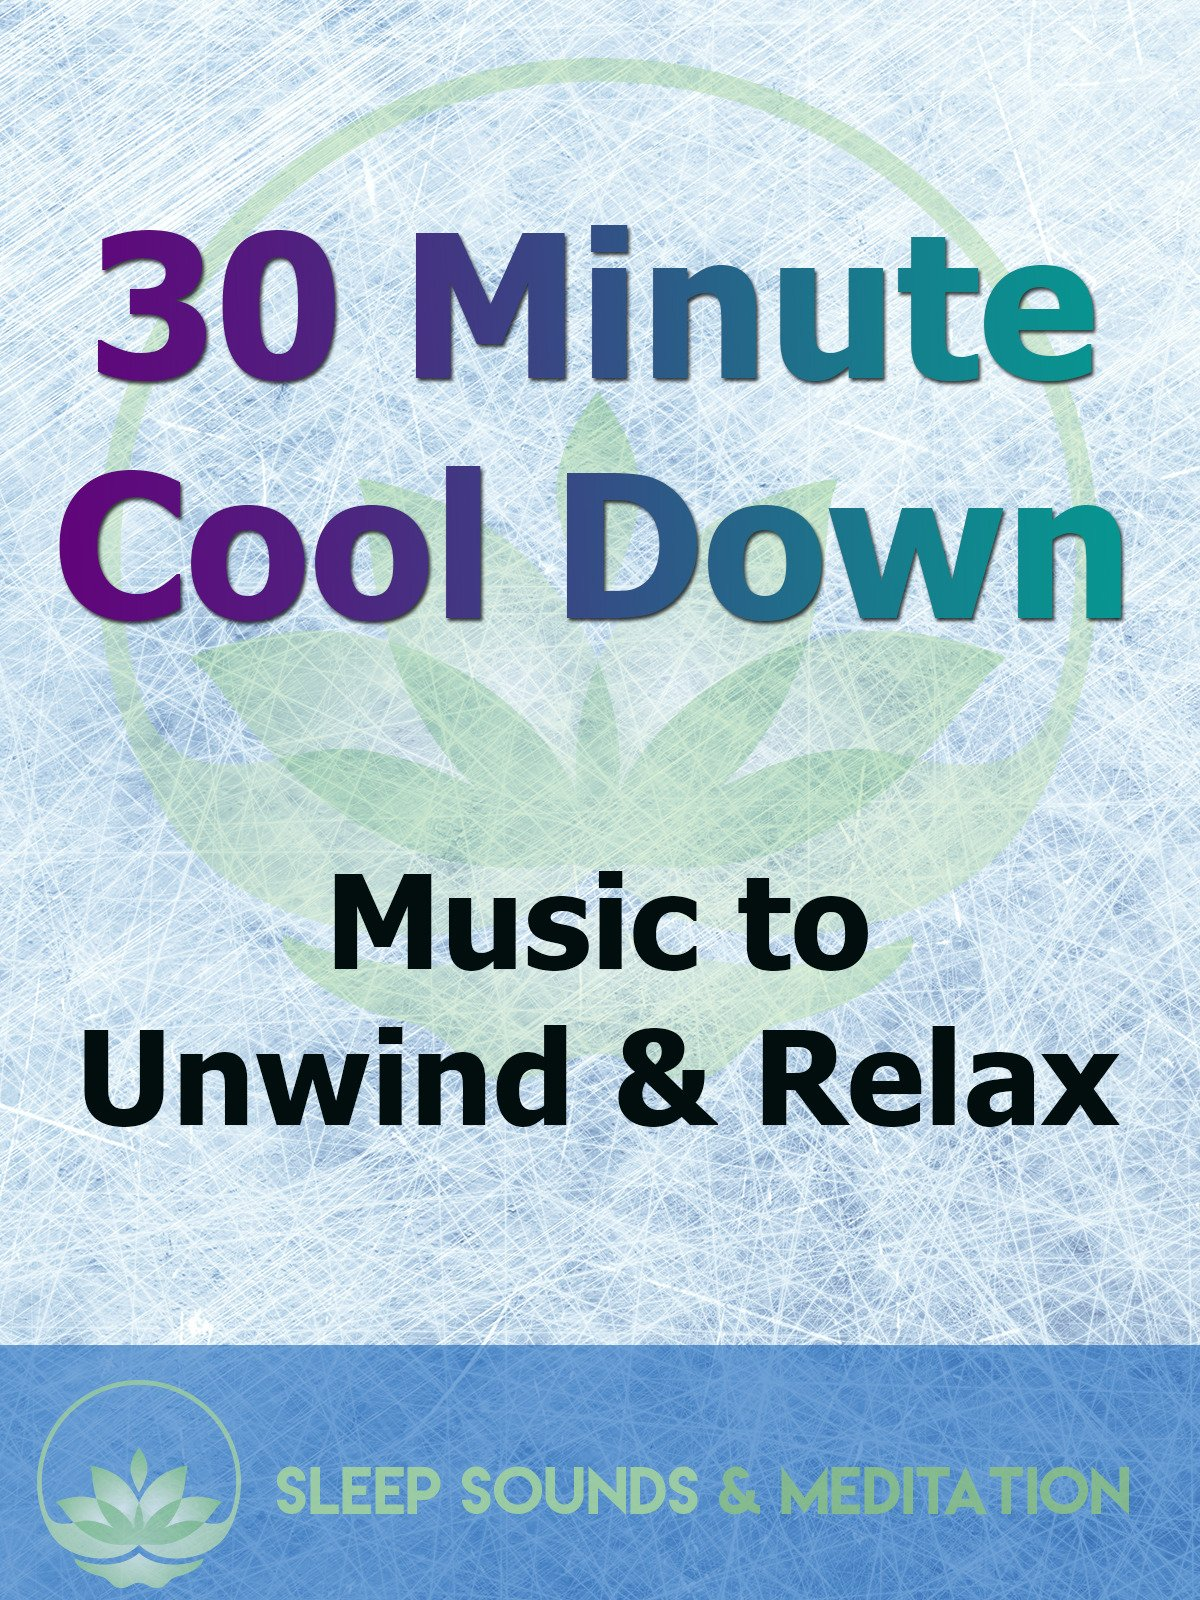 30 Minute Cool Down: Music to Unwind and Relax